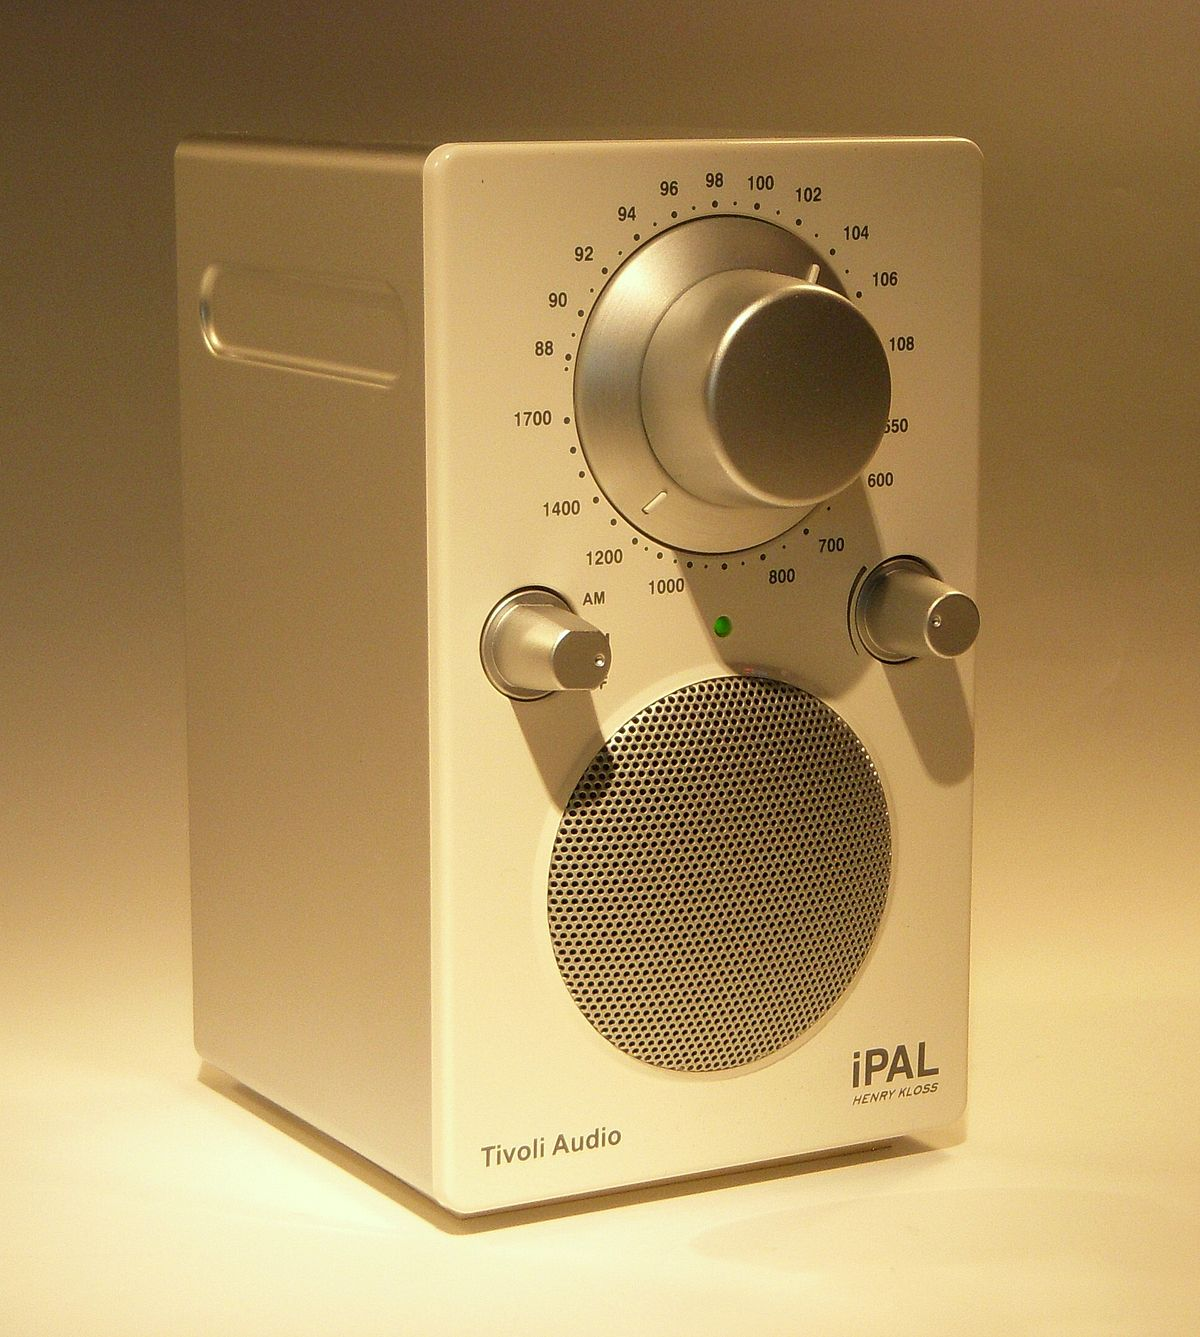 Tivoli Radio Pal Tivoli Audio Pal Wikipedia